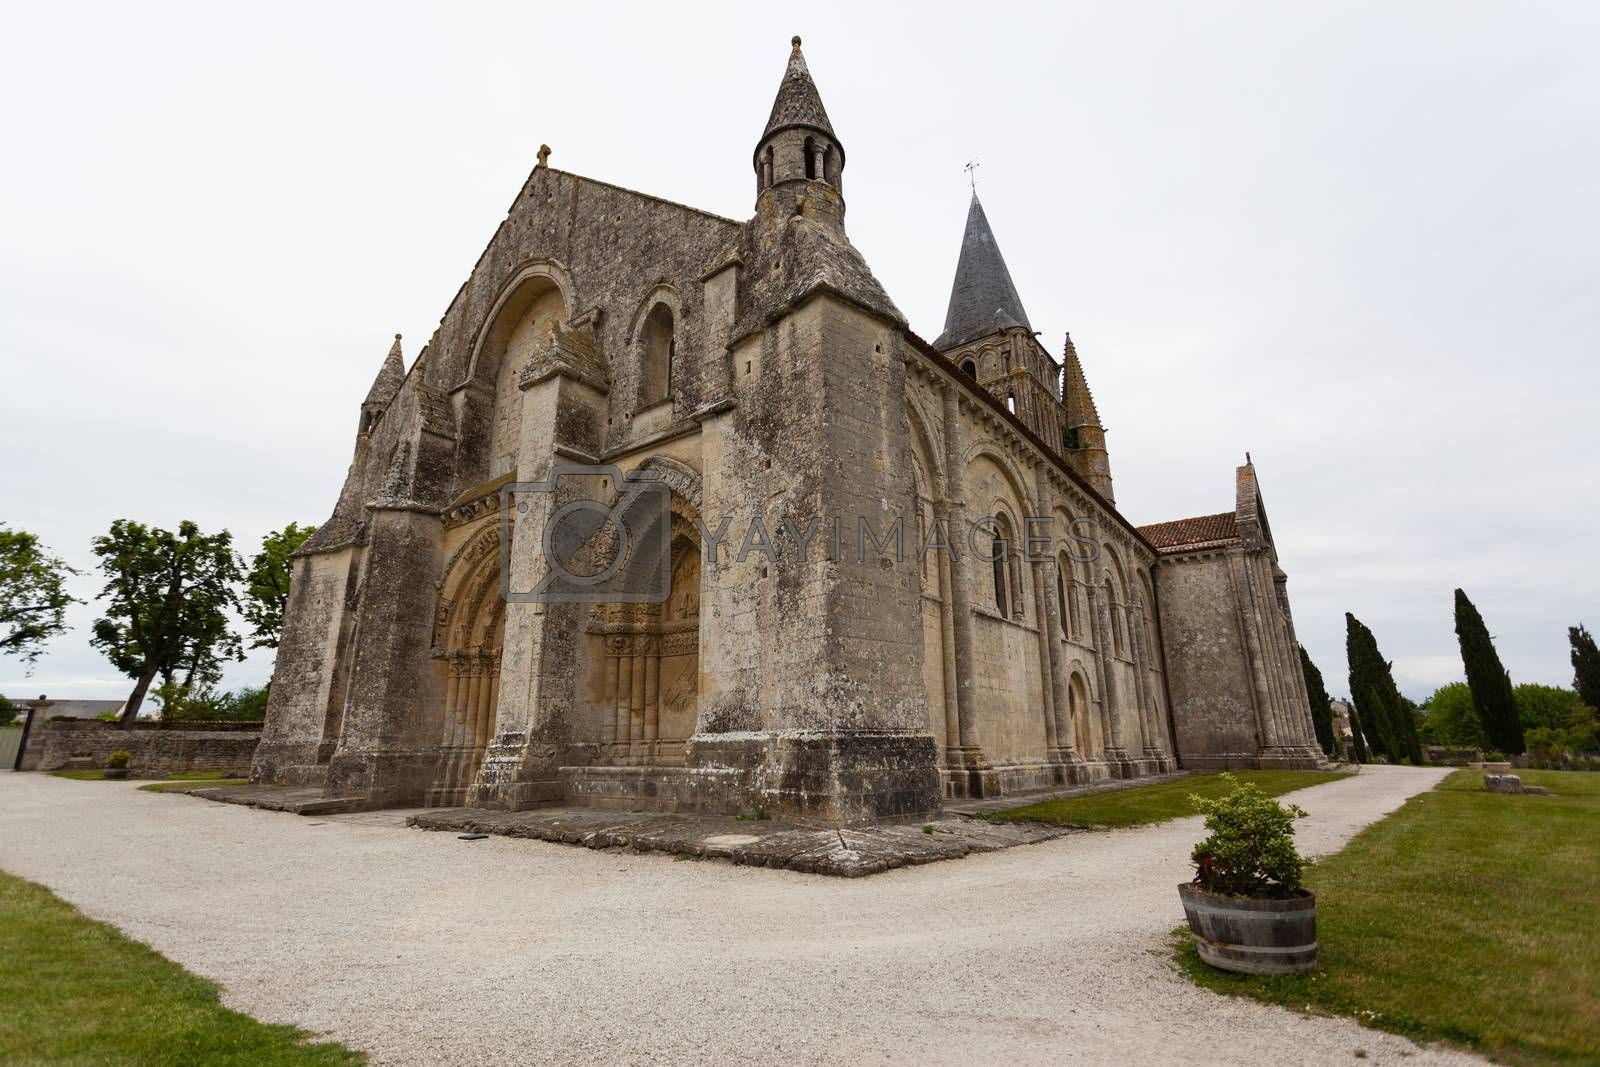 Full side  view of Aulnay de Saintonge church in Charente Maritime region of France